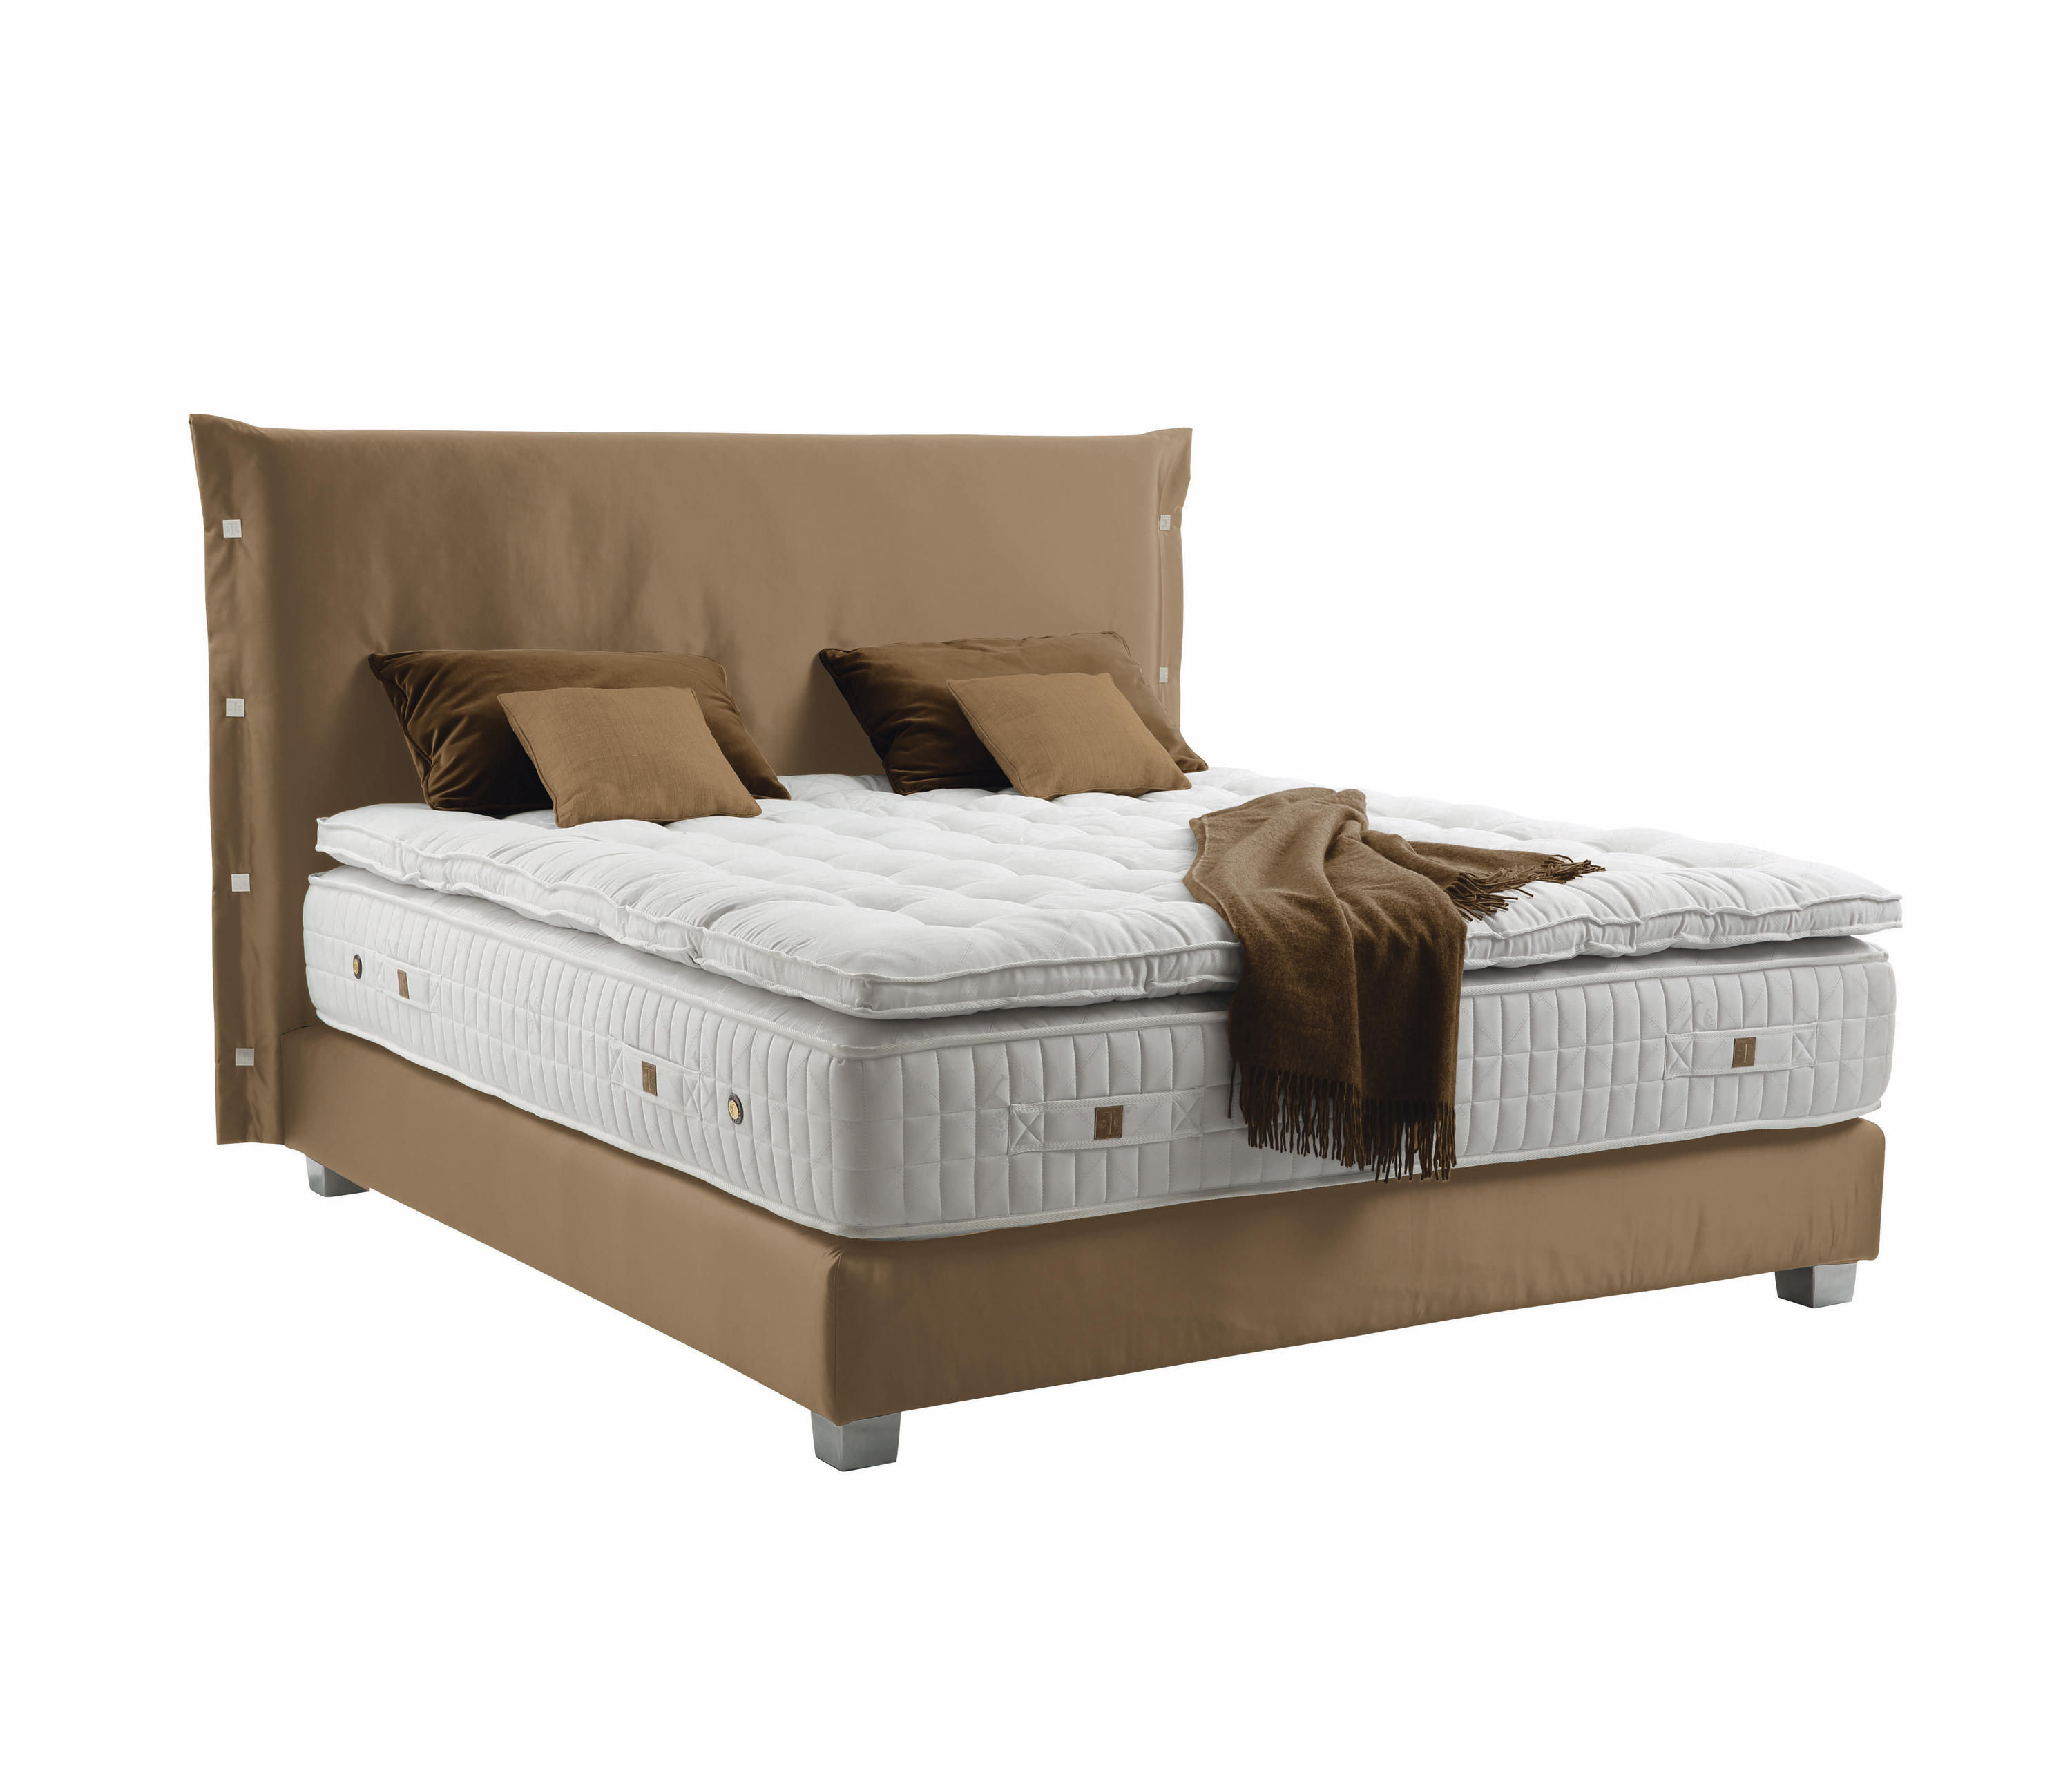 Double bed furniture design - Sleeping Systems Collection Prestige Headboard Trench Double Beds Treca Interiors Paris